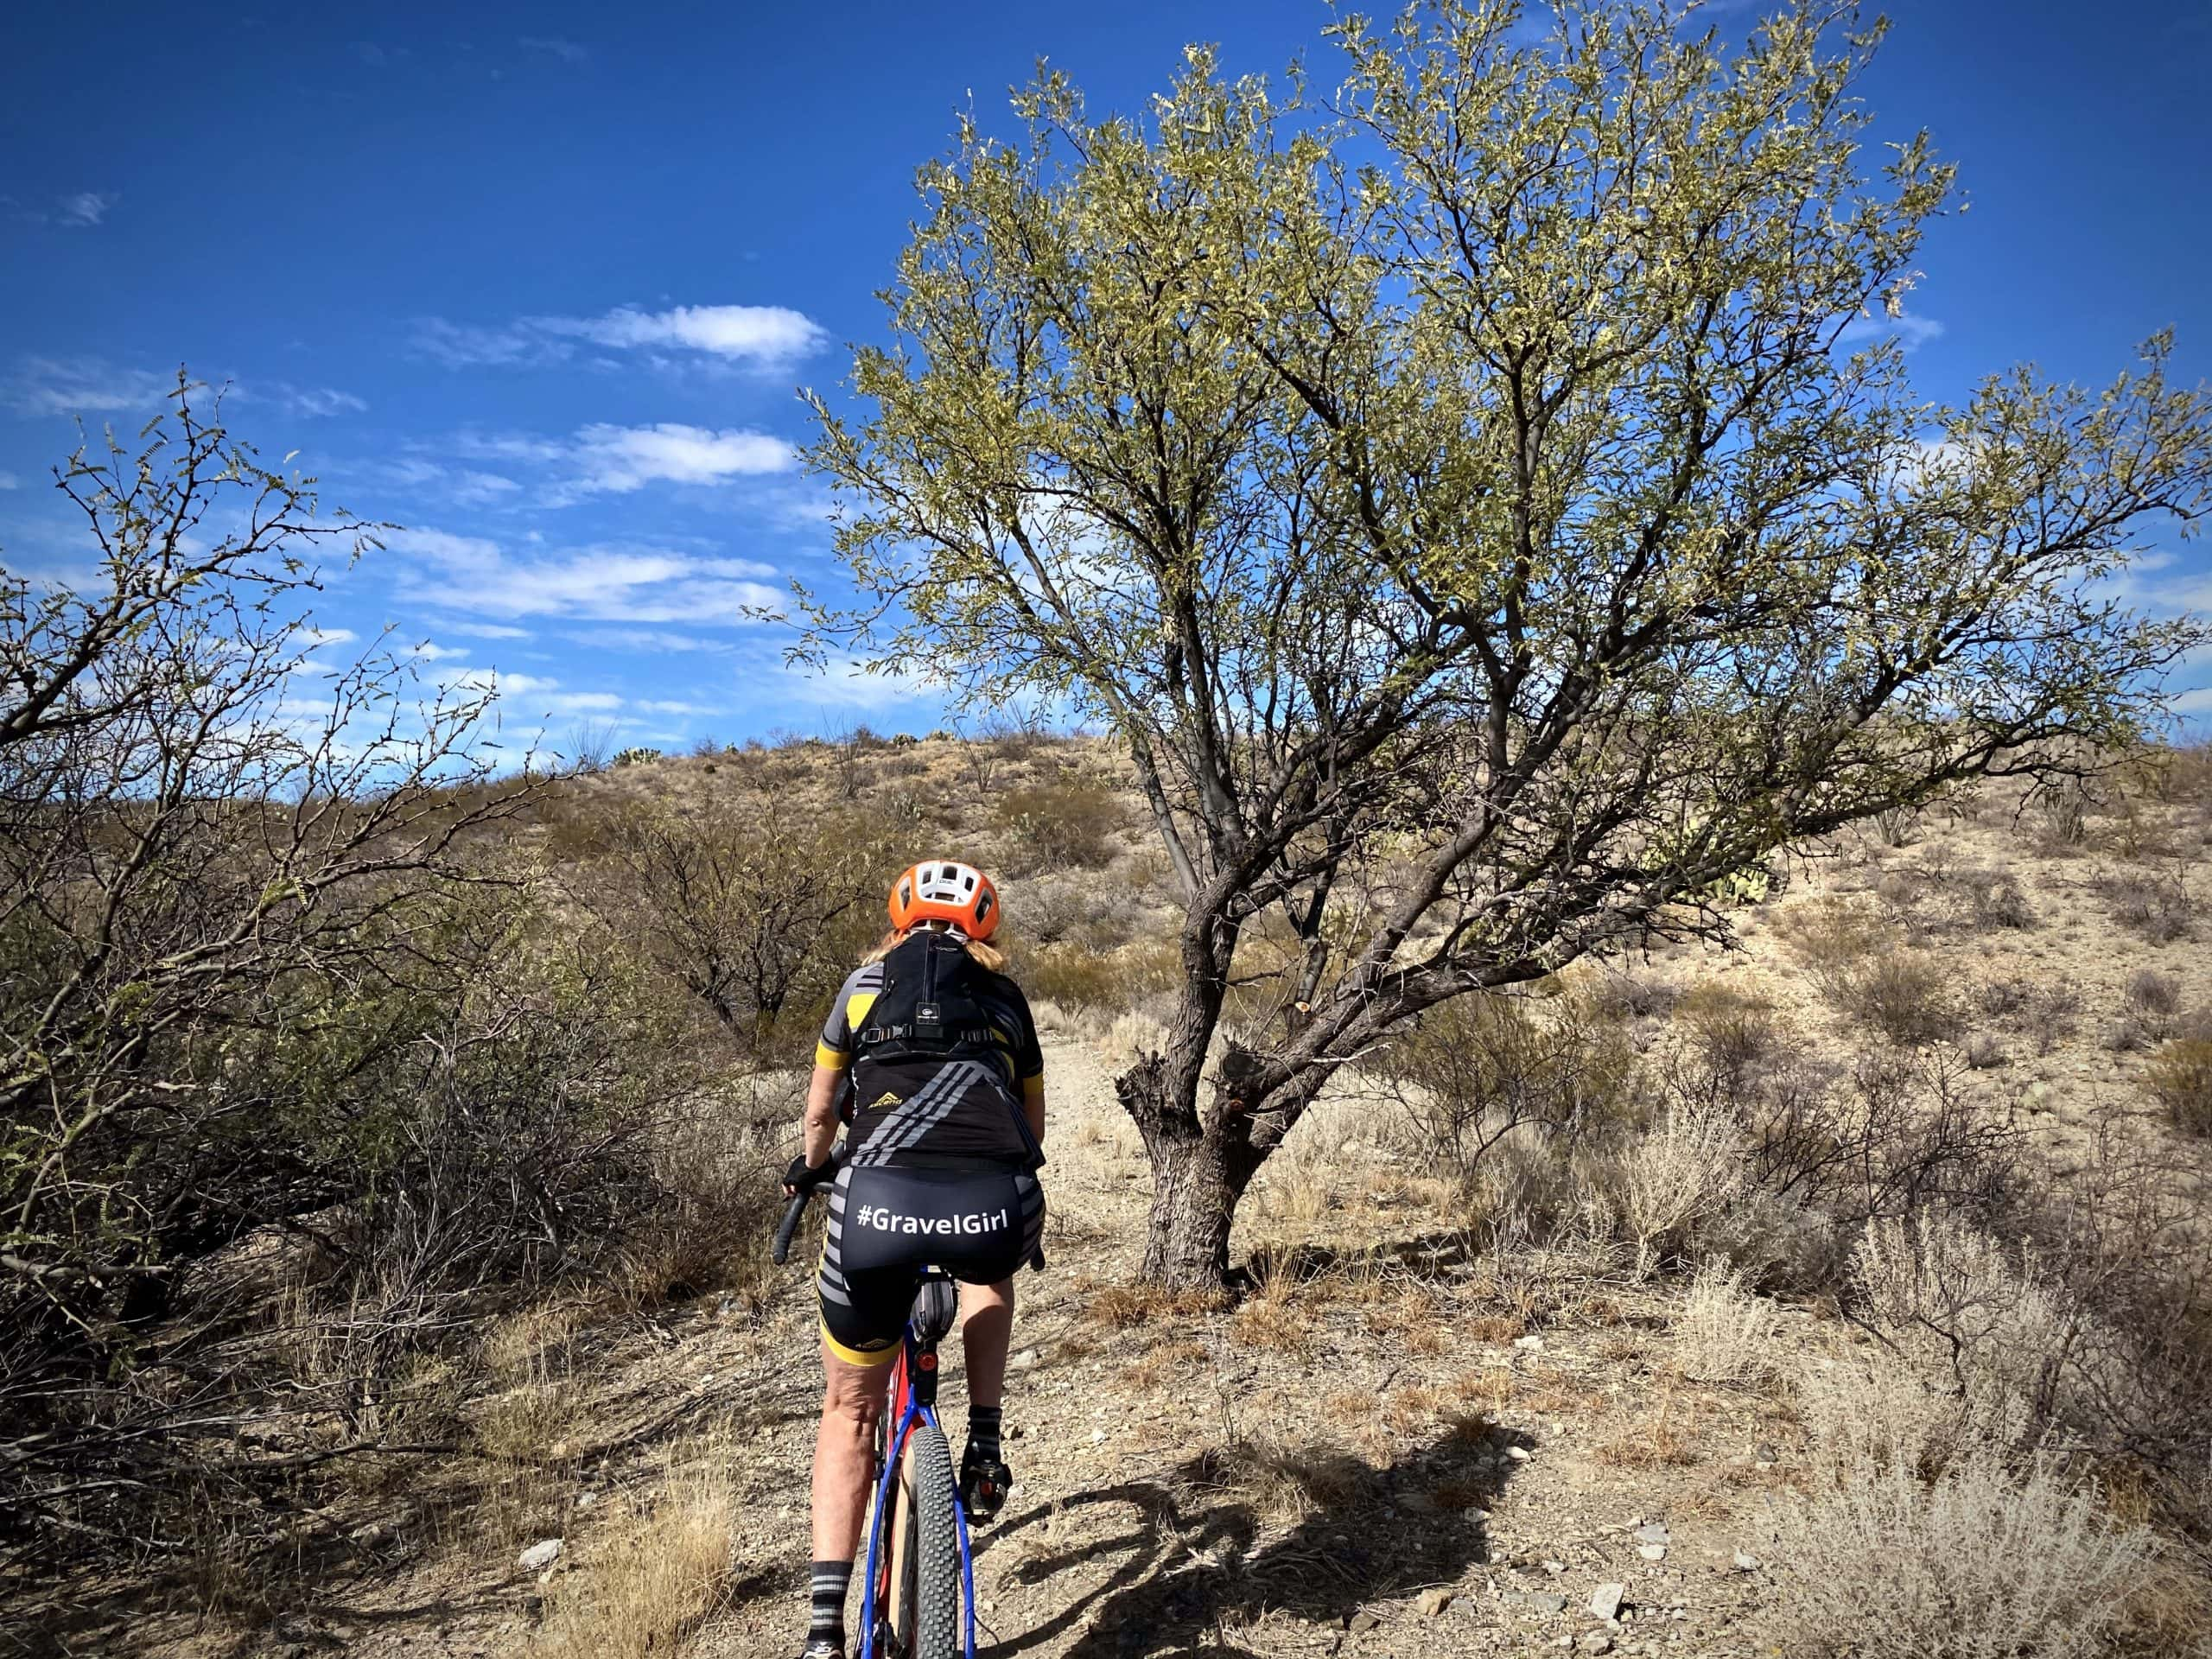 Gravel Cyclist riding the Sahuarita section of the AZT.